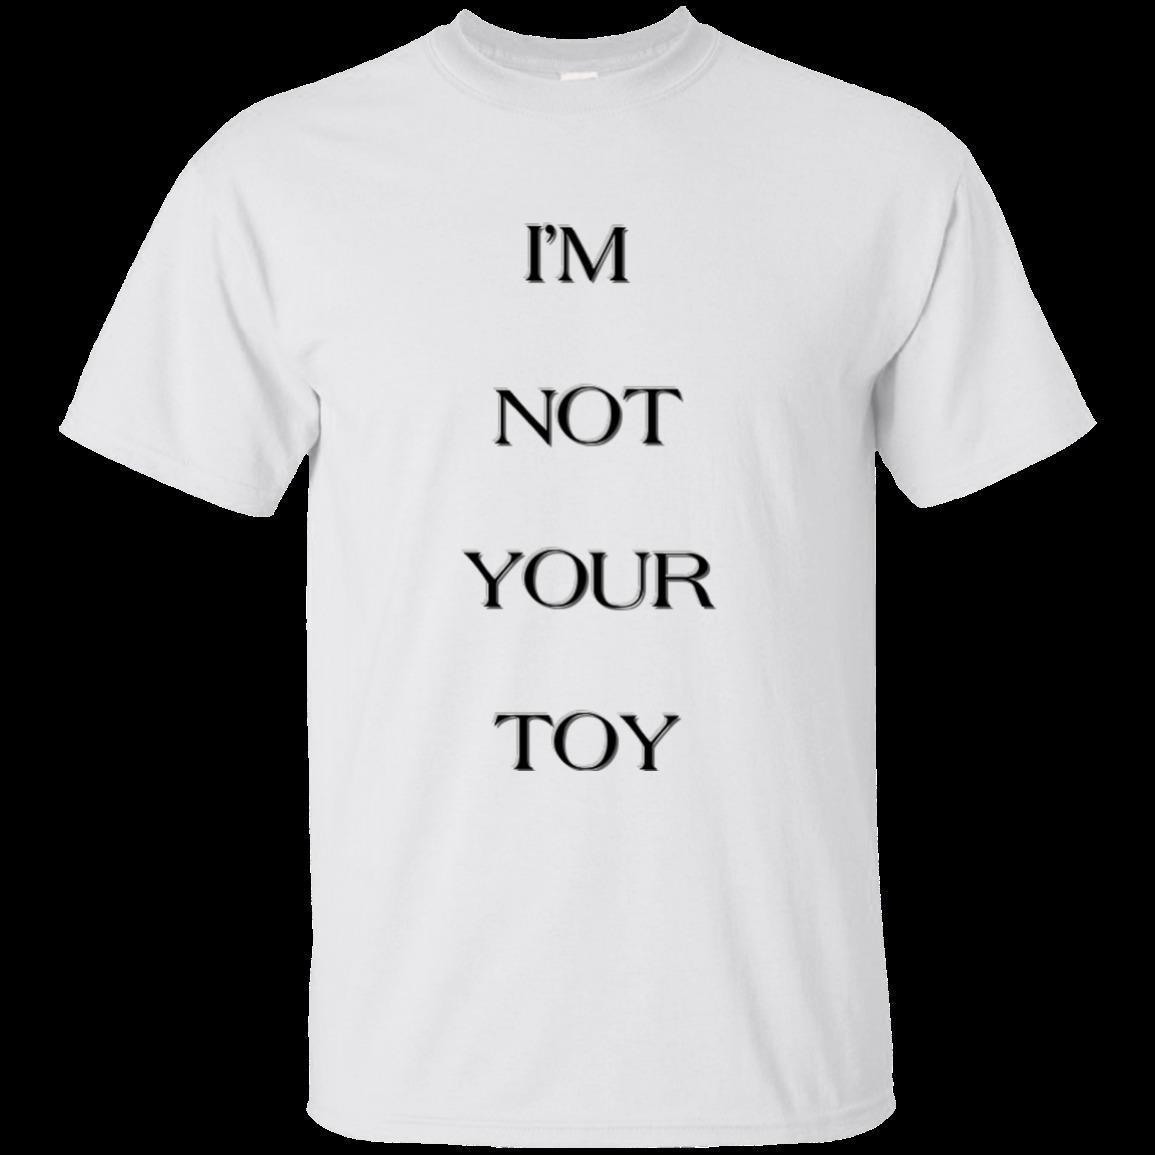 Eurovision Winner - TOY - IM NOT YOUR TOY T Shirt GIFT Girl Power Wonder O Neck Shirt Plus Size T-Shirt Shirt